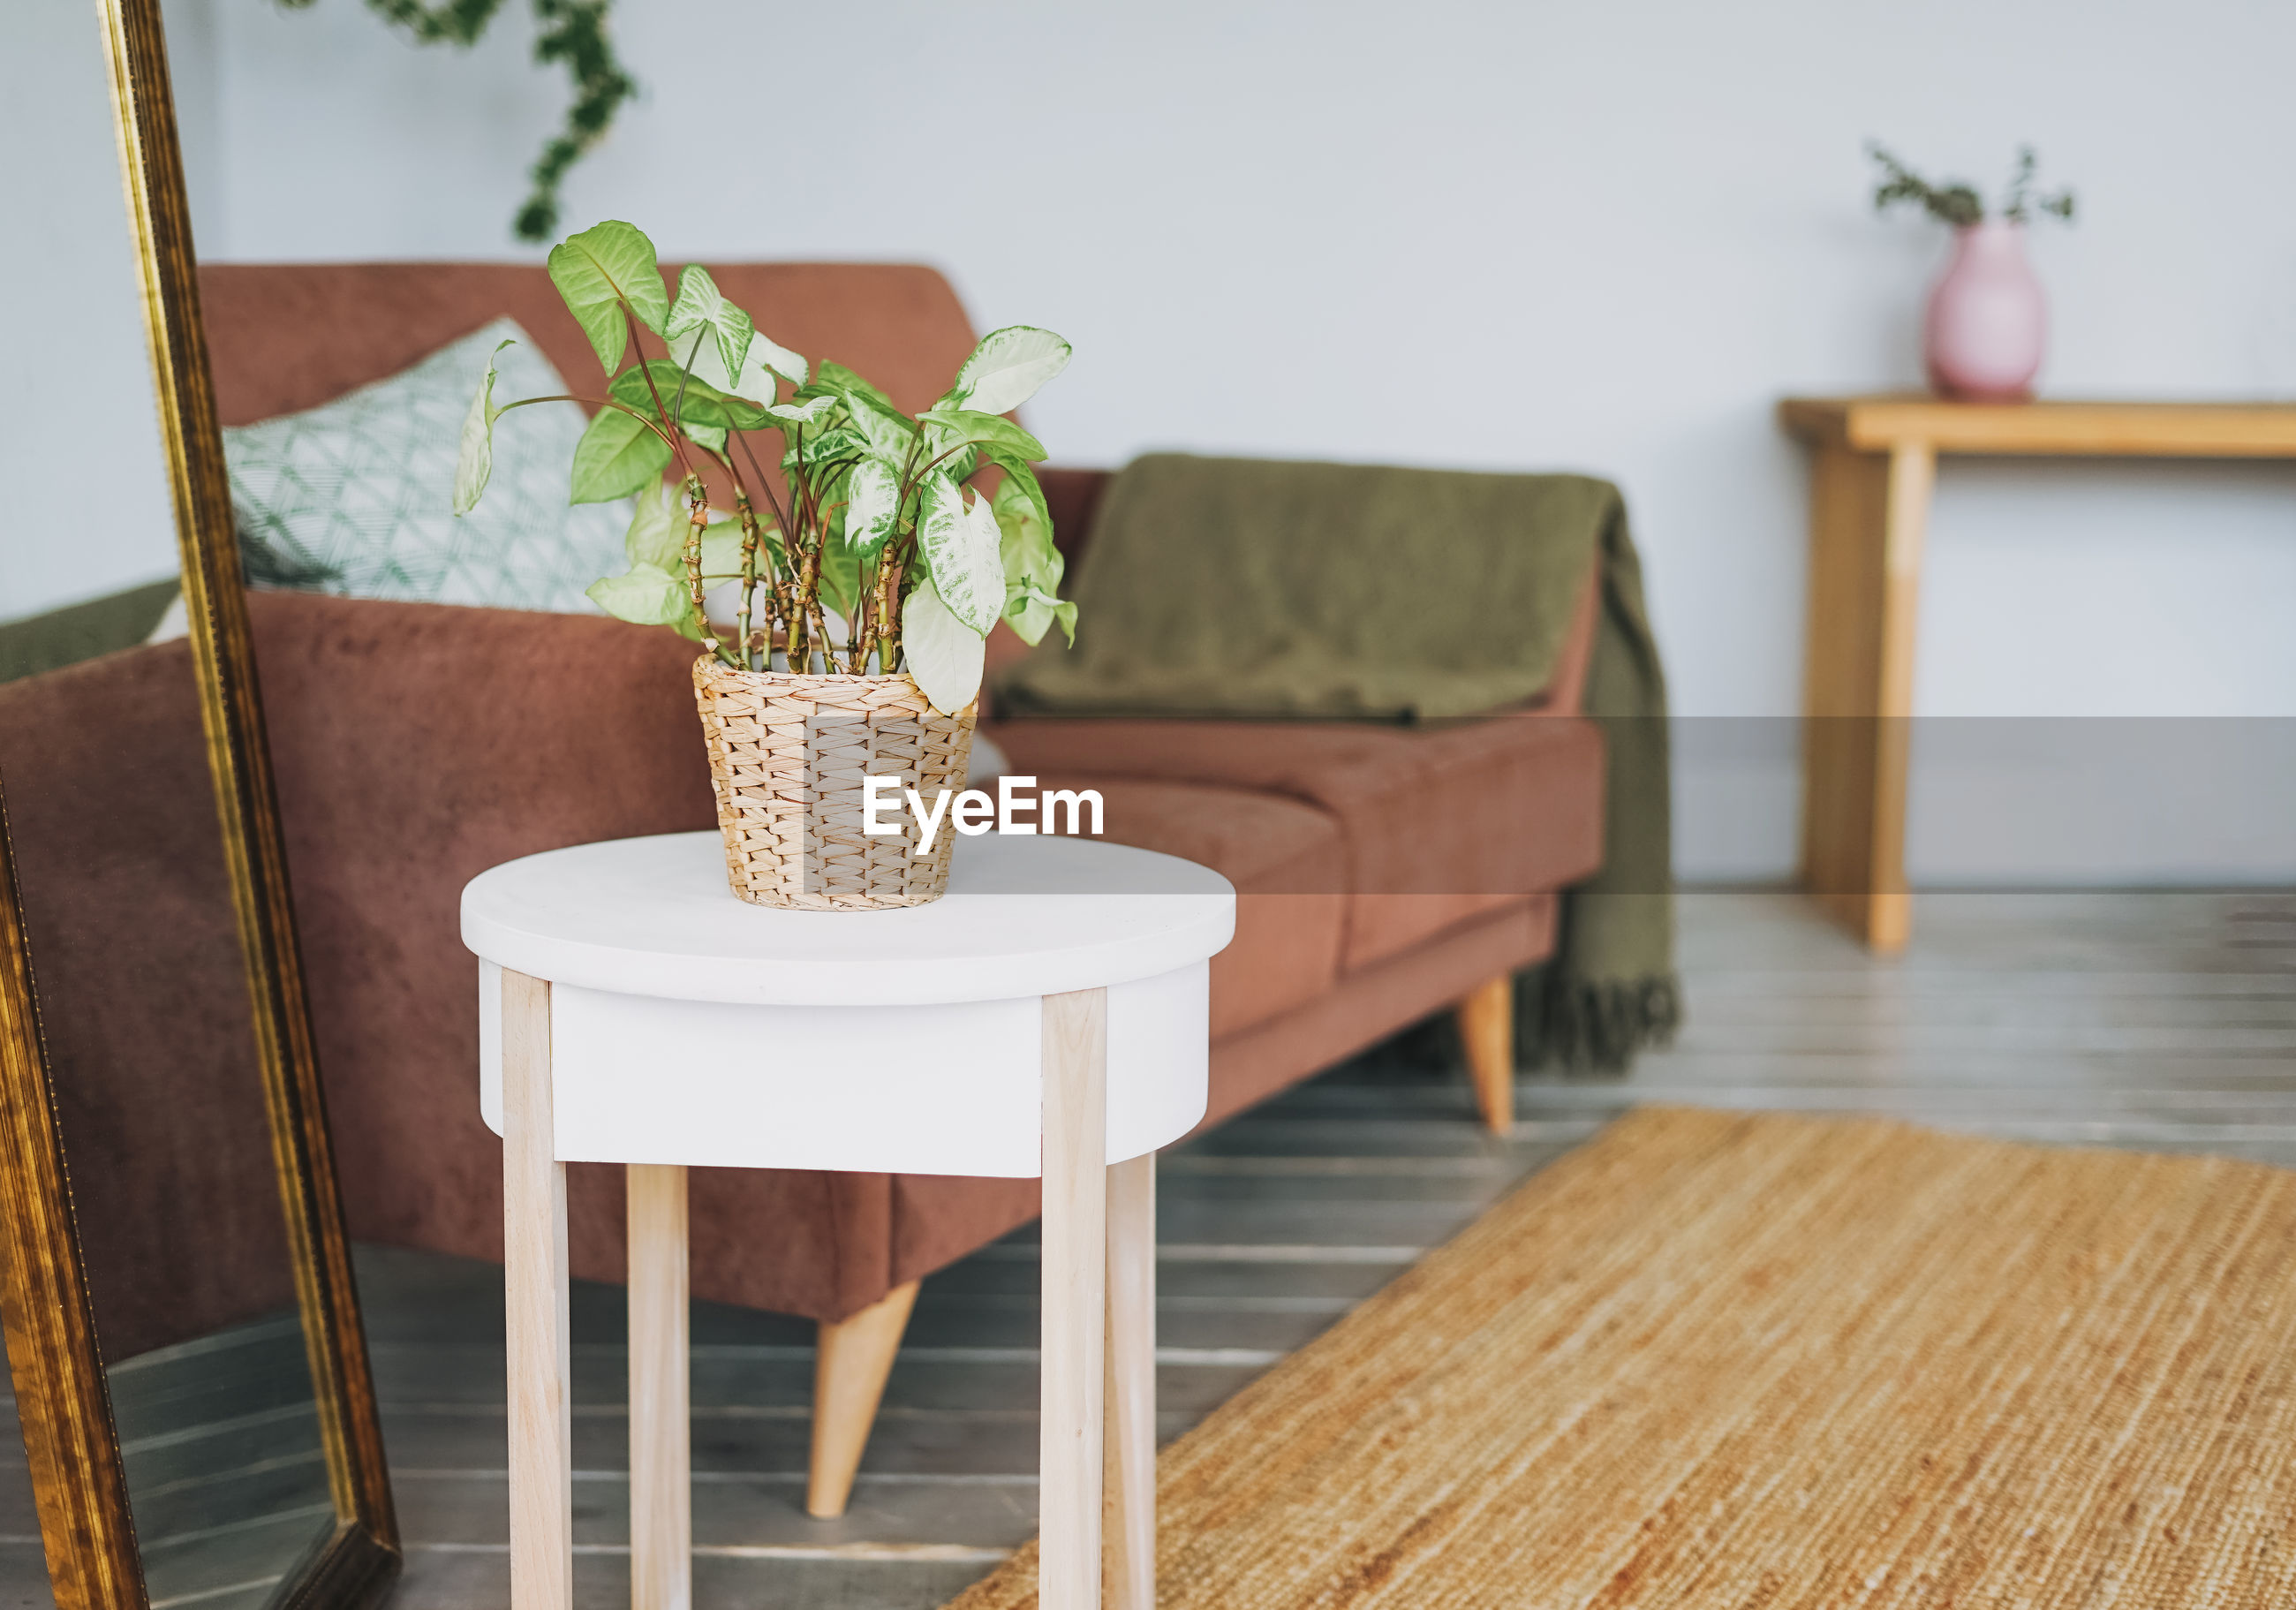 POTTED PLANT ON TABLE BY CHAIR AT HOME